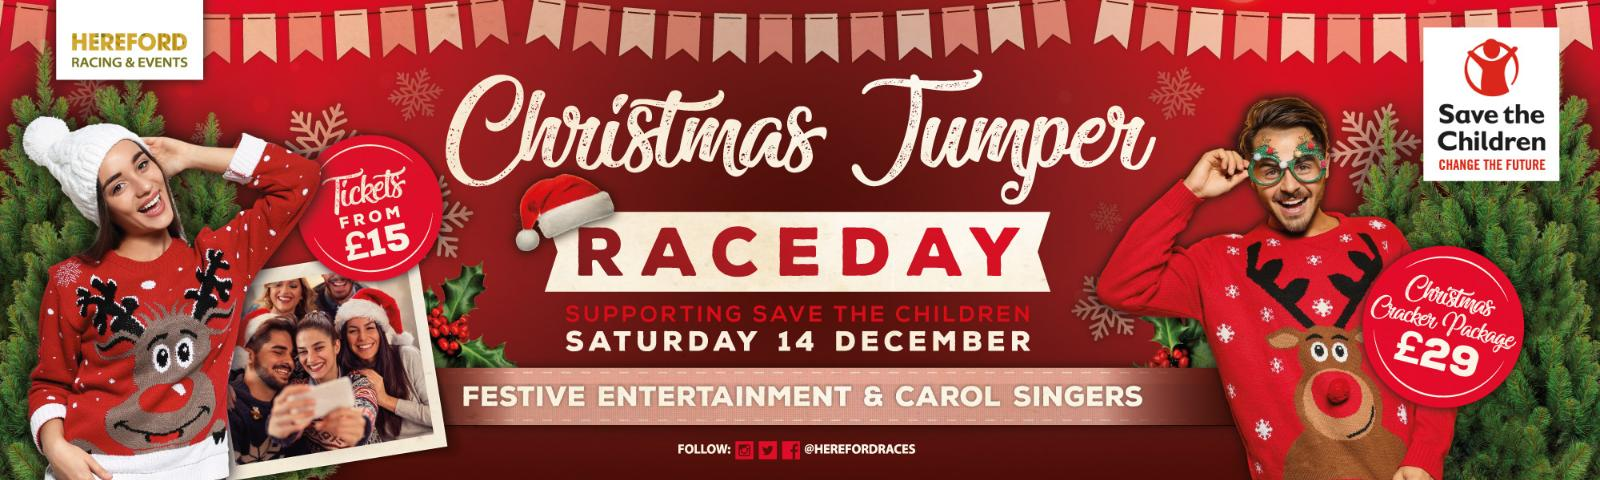 Christmas Jumper Day 2019 Uk.Christmas Jumper Raceday Whats On Hereford Racecourse